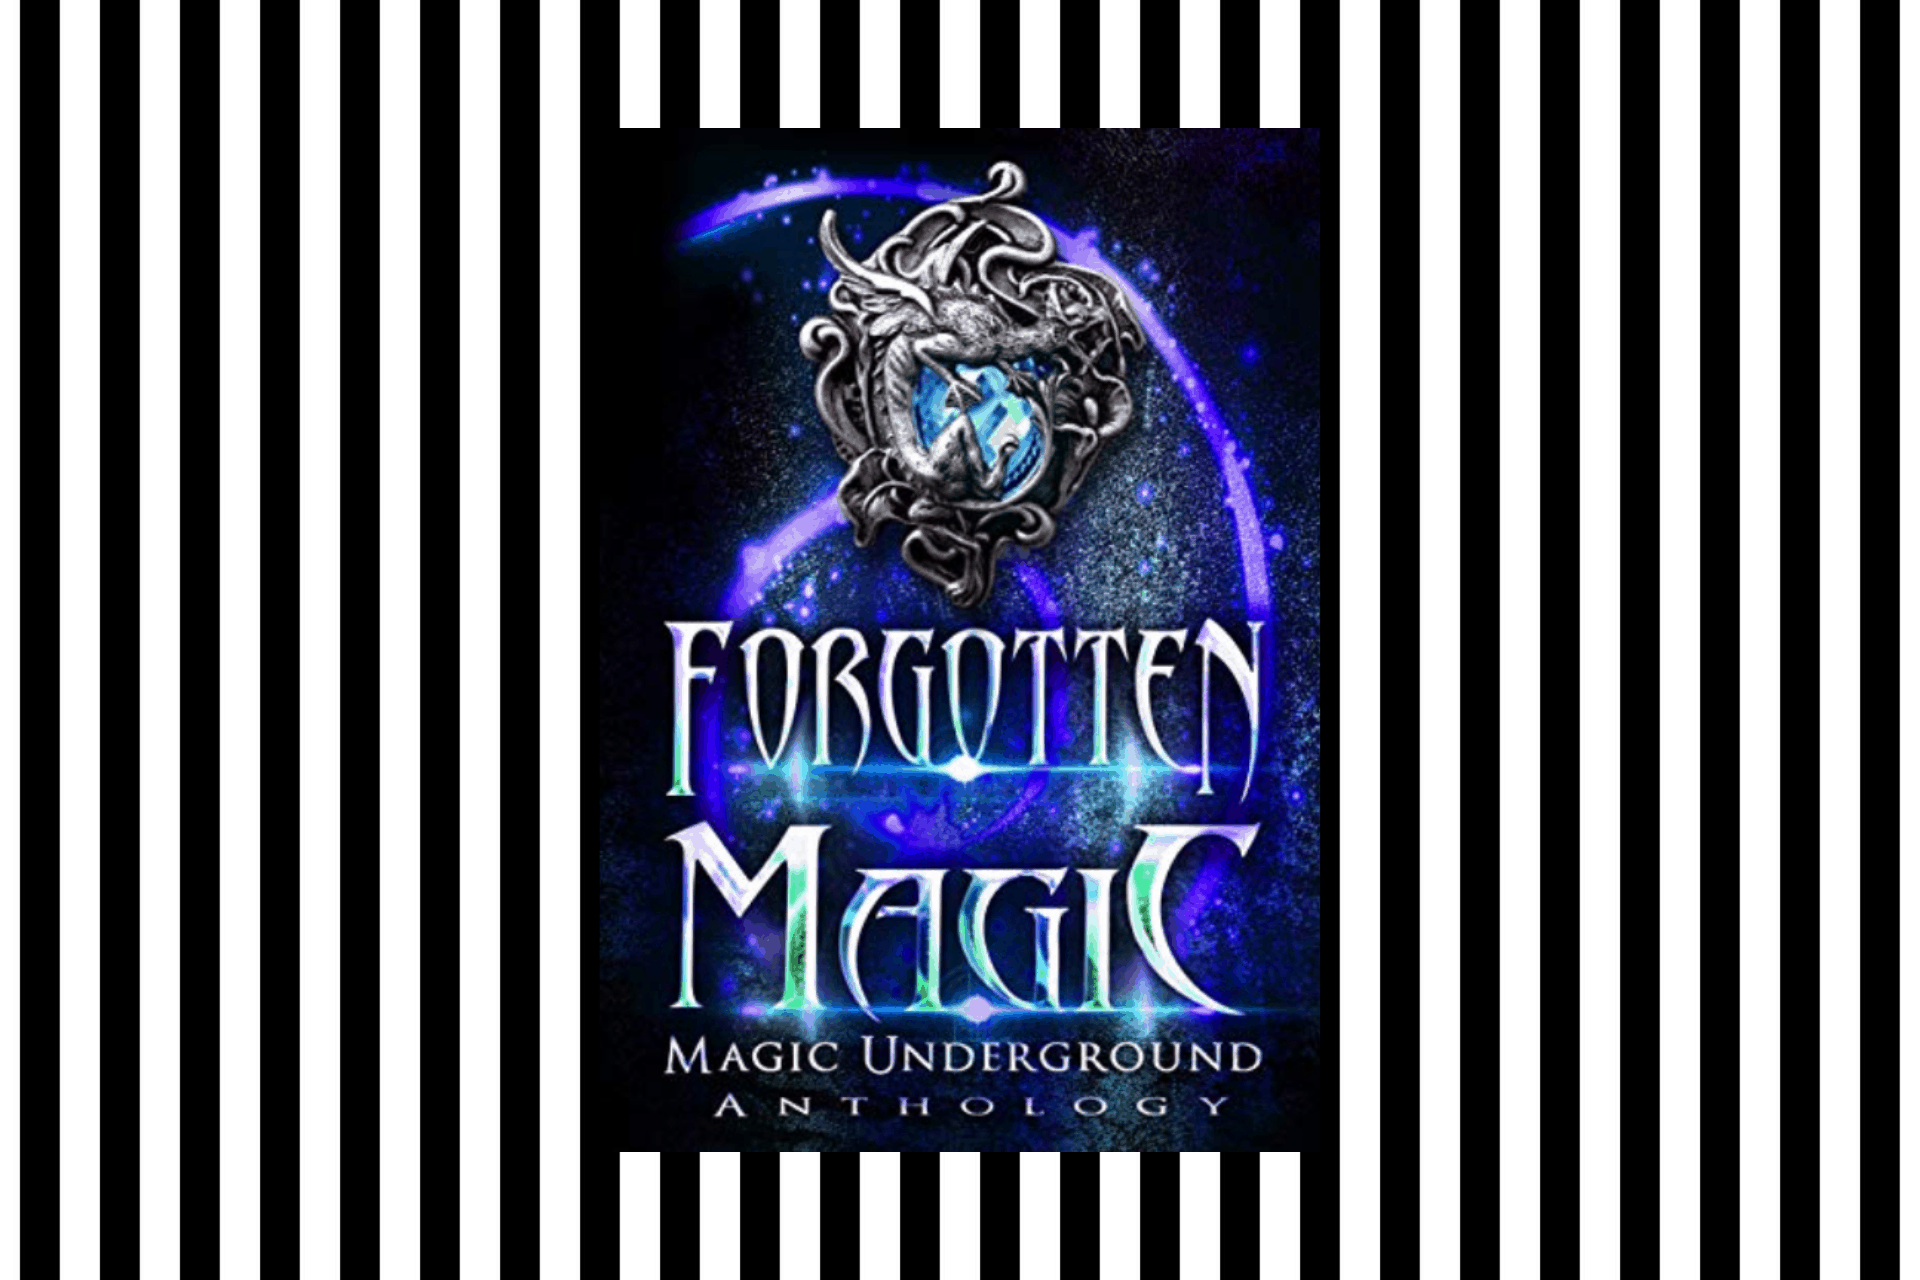 The cover of Forgotten Magic by Magical Mayhem Press